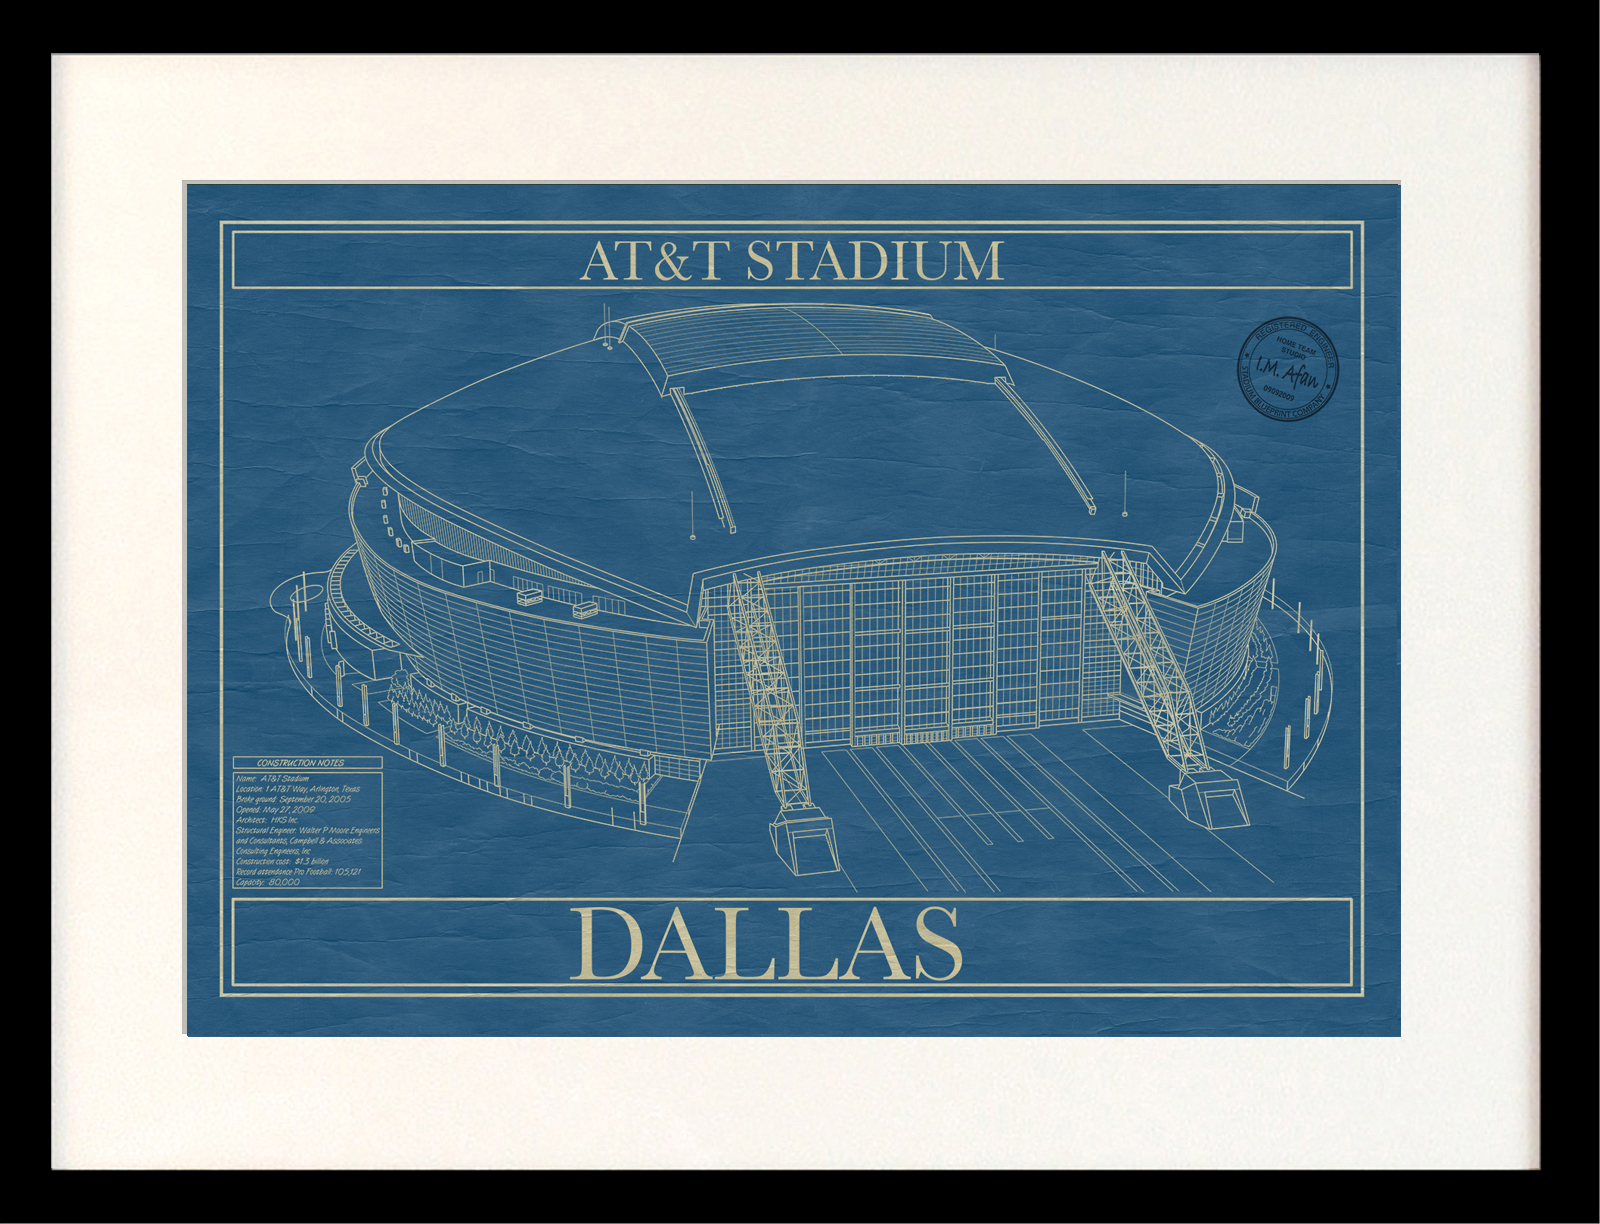 Dallas att stadium stadium blueprint company dallas att stadium malvernweather Choice Image